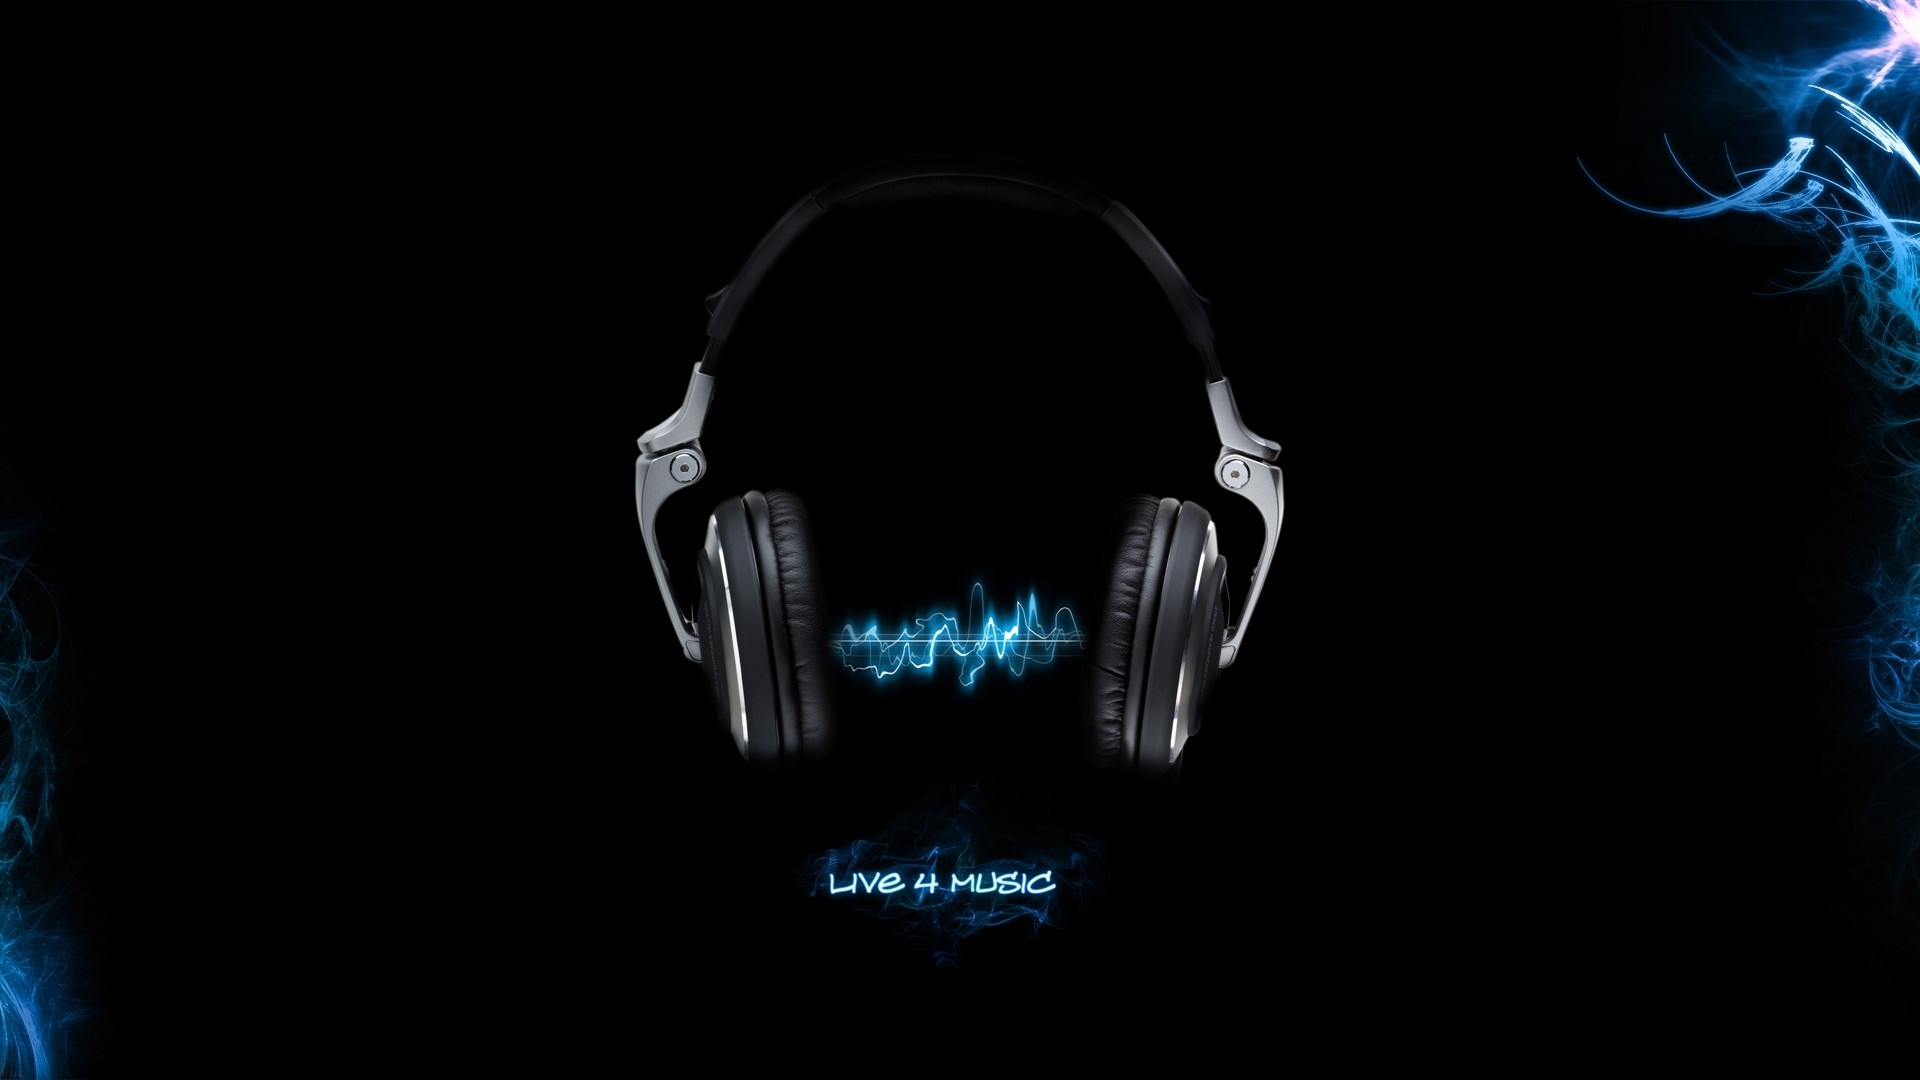 Music Backgrounds | Headphones Music Black Background Fresh New HD Wallpaper  Best Quality .